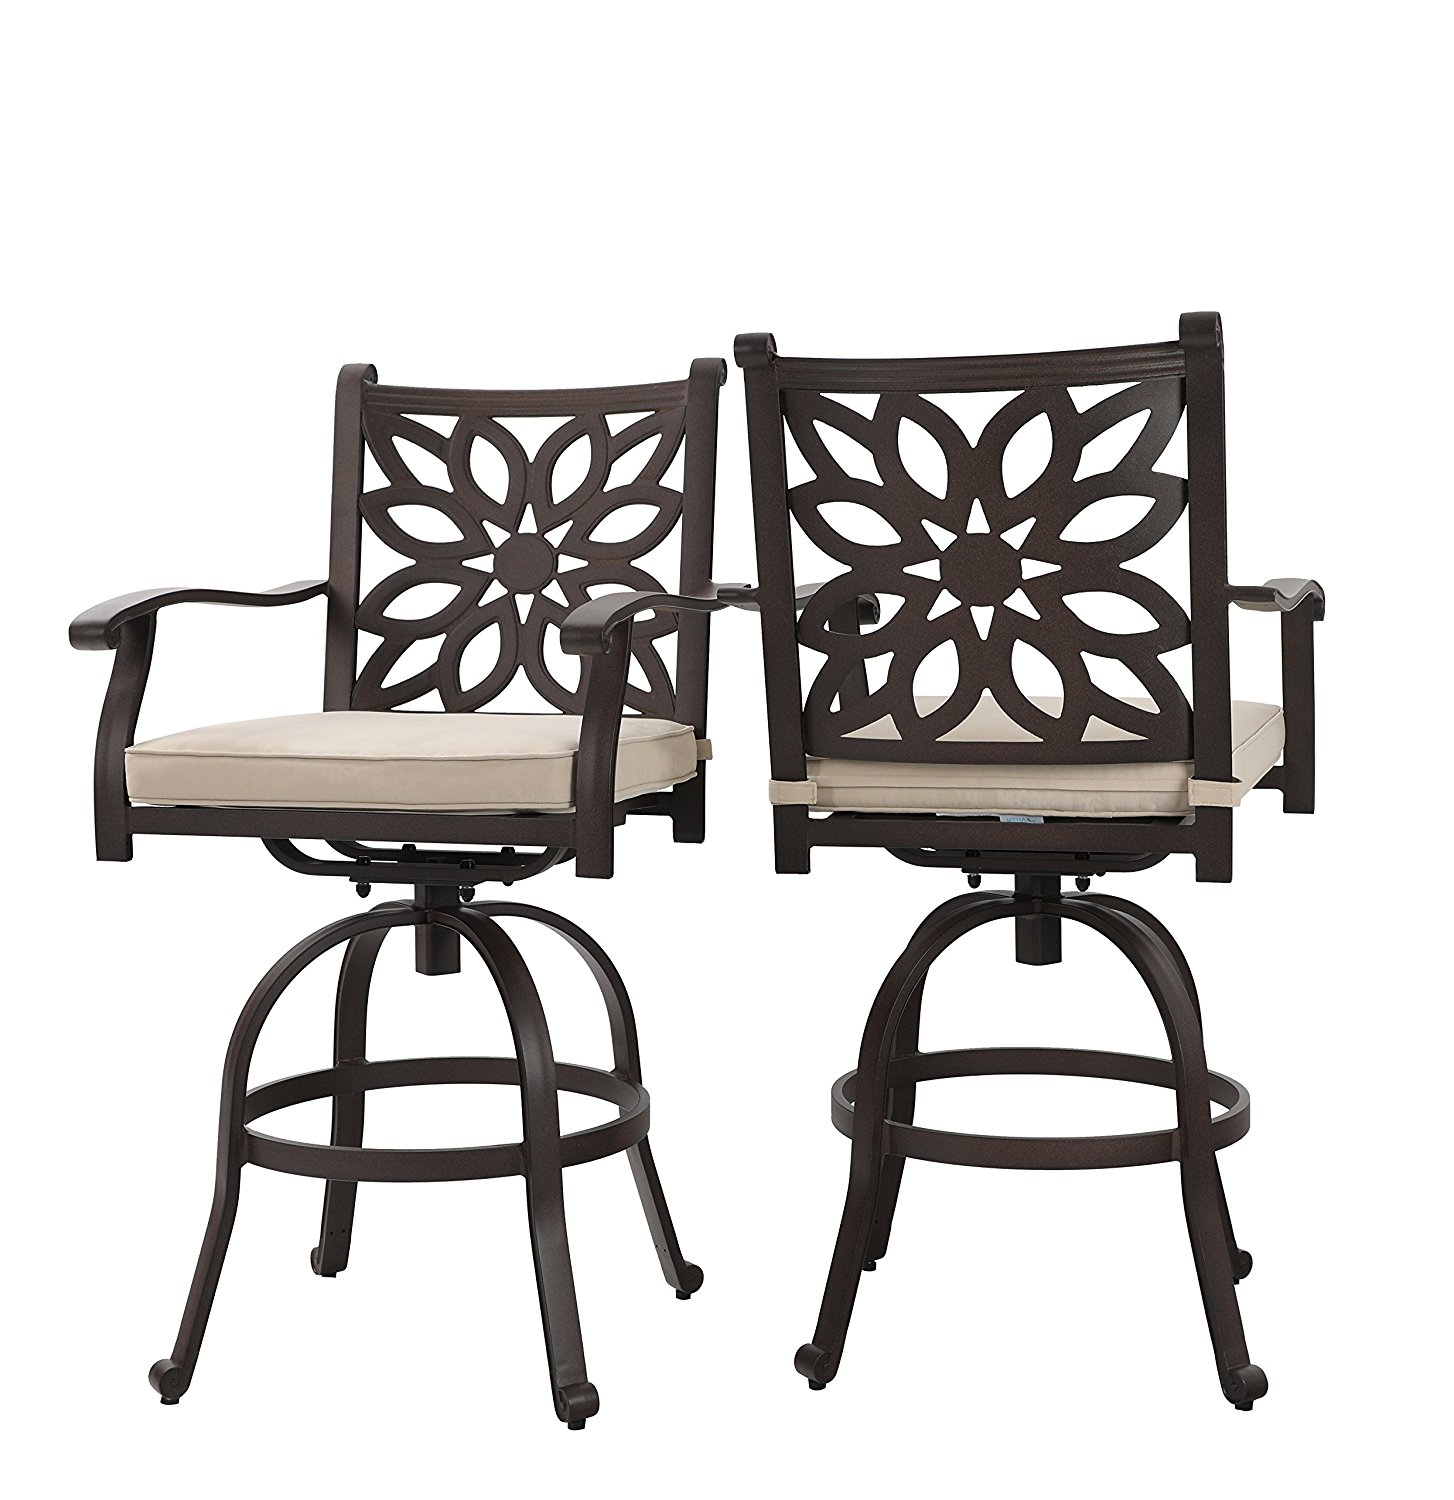 Peachy Cheap Patio Bar Set With Swivel Chairs Find Patio Bar Set Andrewgaddart Wooden Chair Designs For Living Room Andrewgaddartcom